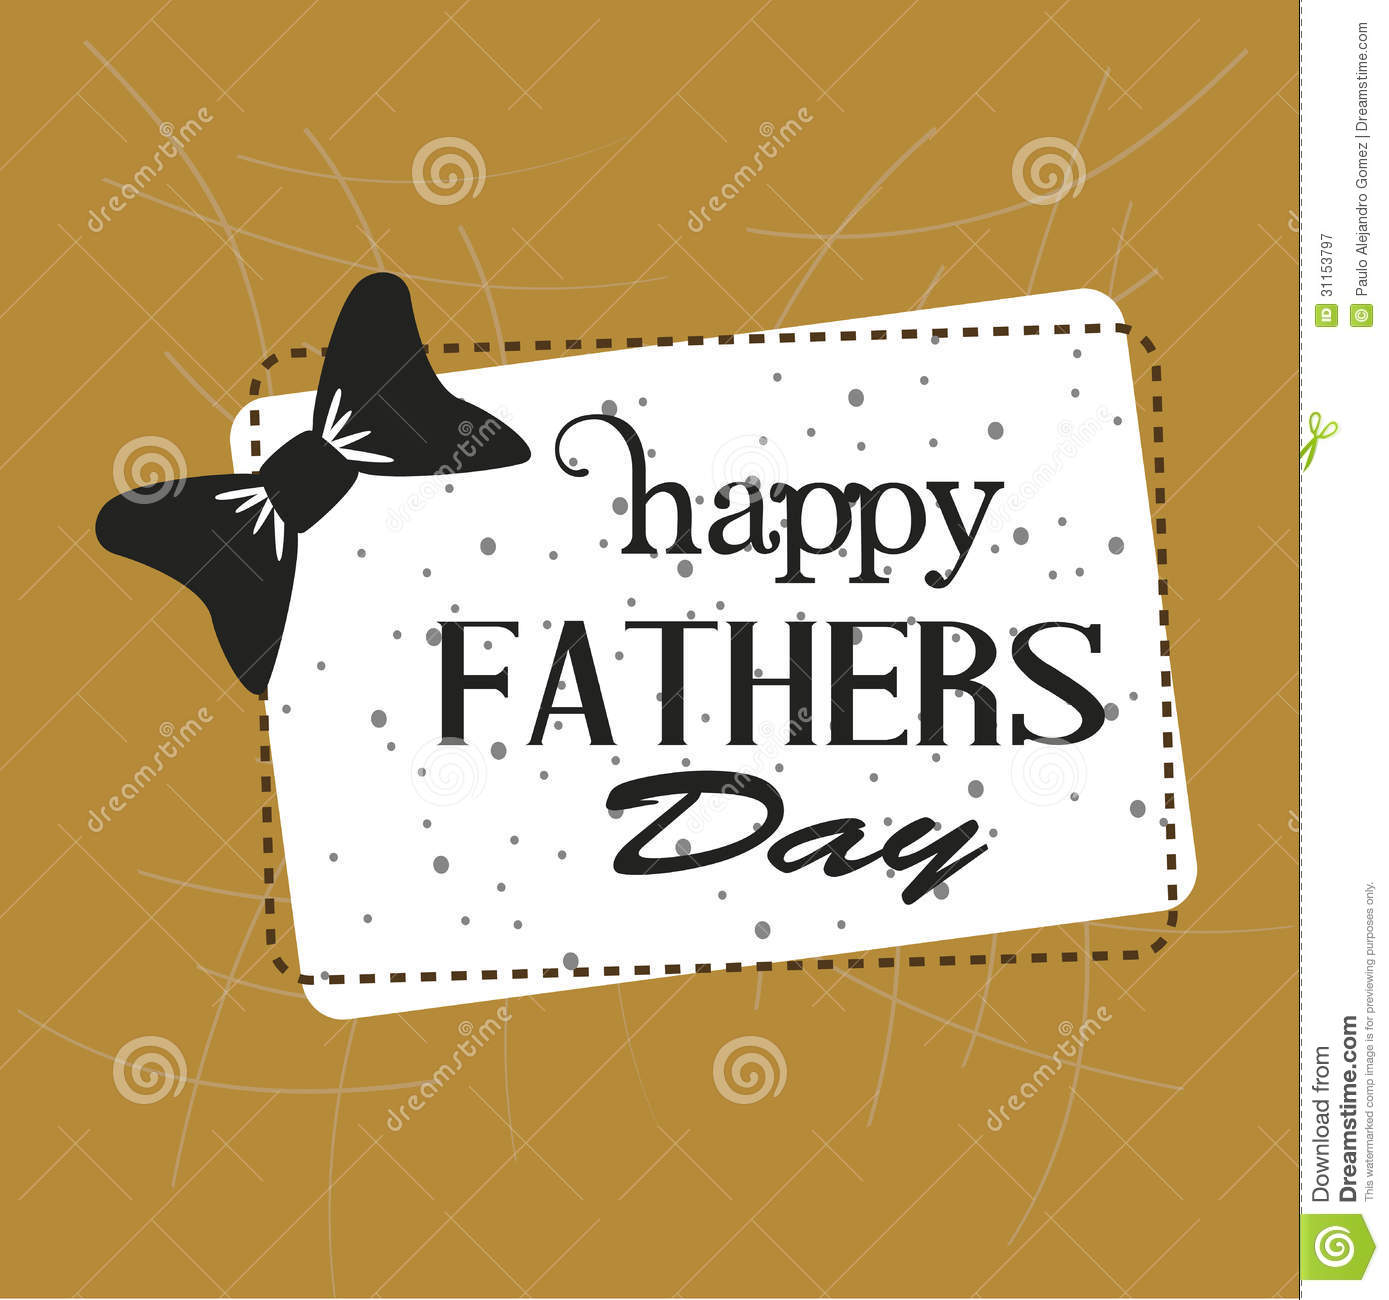 Frame happy fathers day stock vector. Illustration of artwork - 31153797